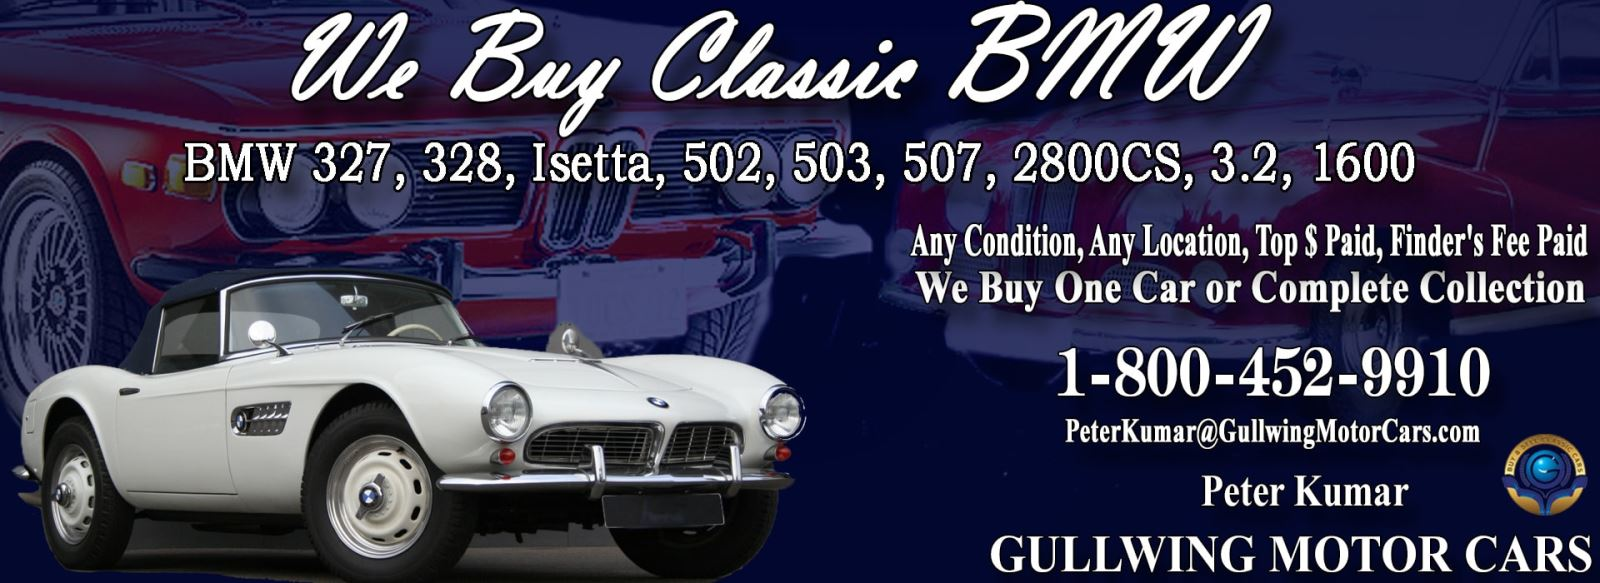 Classic BMW 3.0 for sale, we buy vintage BMW 3.0. Call Peter Kumar. Gullwing Motor